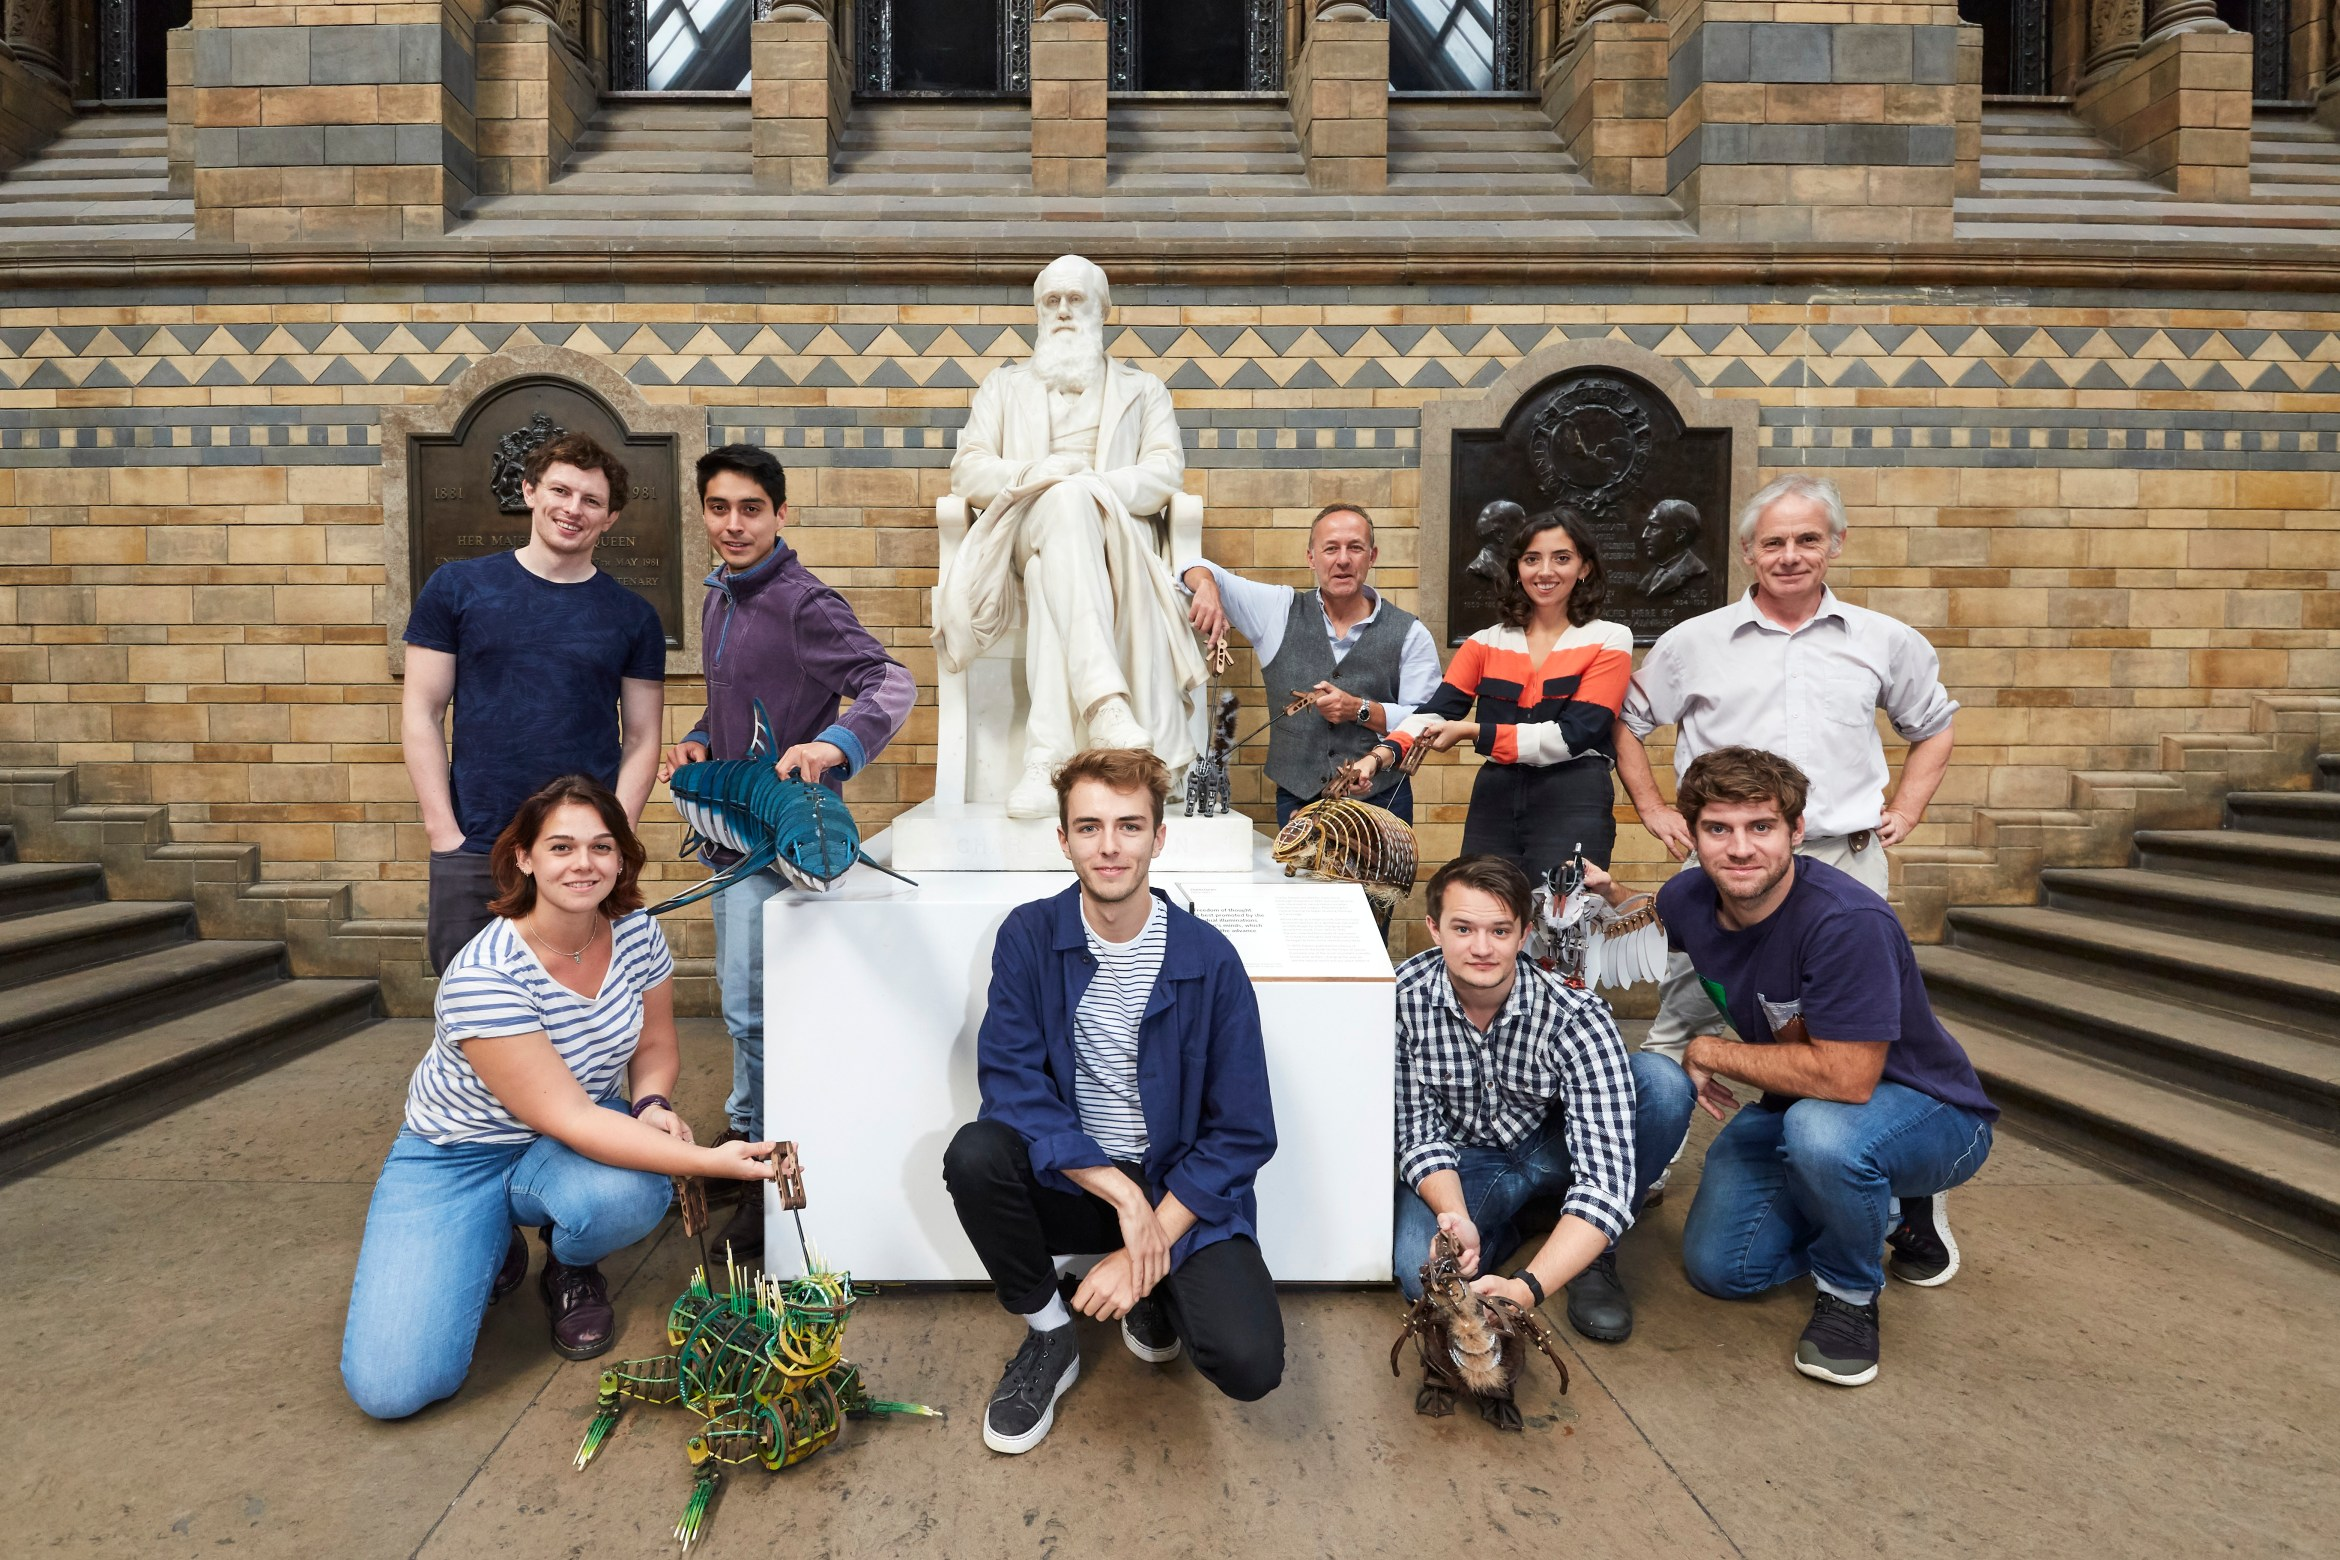 Cast of The Wider Earth at the Natural History Museum (courtesy of The Trustees of the Natural History Museum) (1).jpg